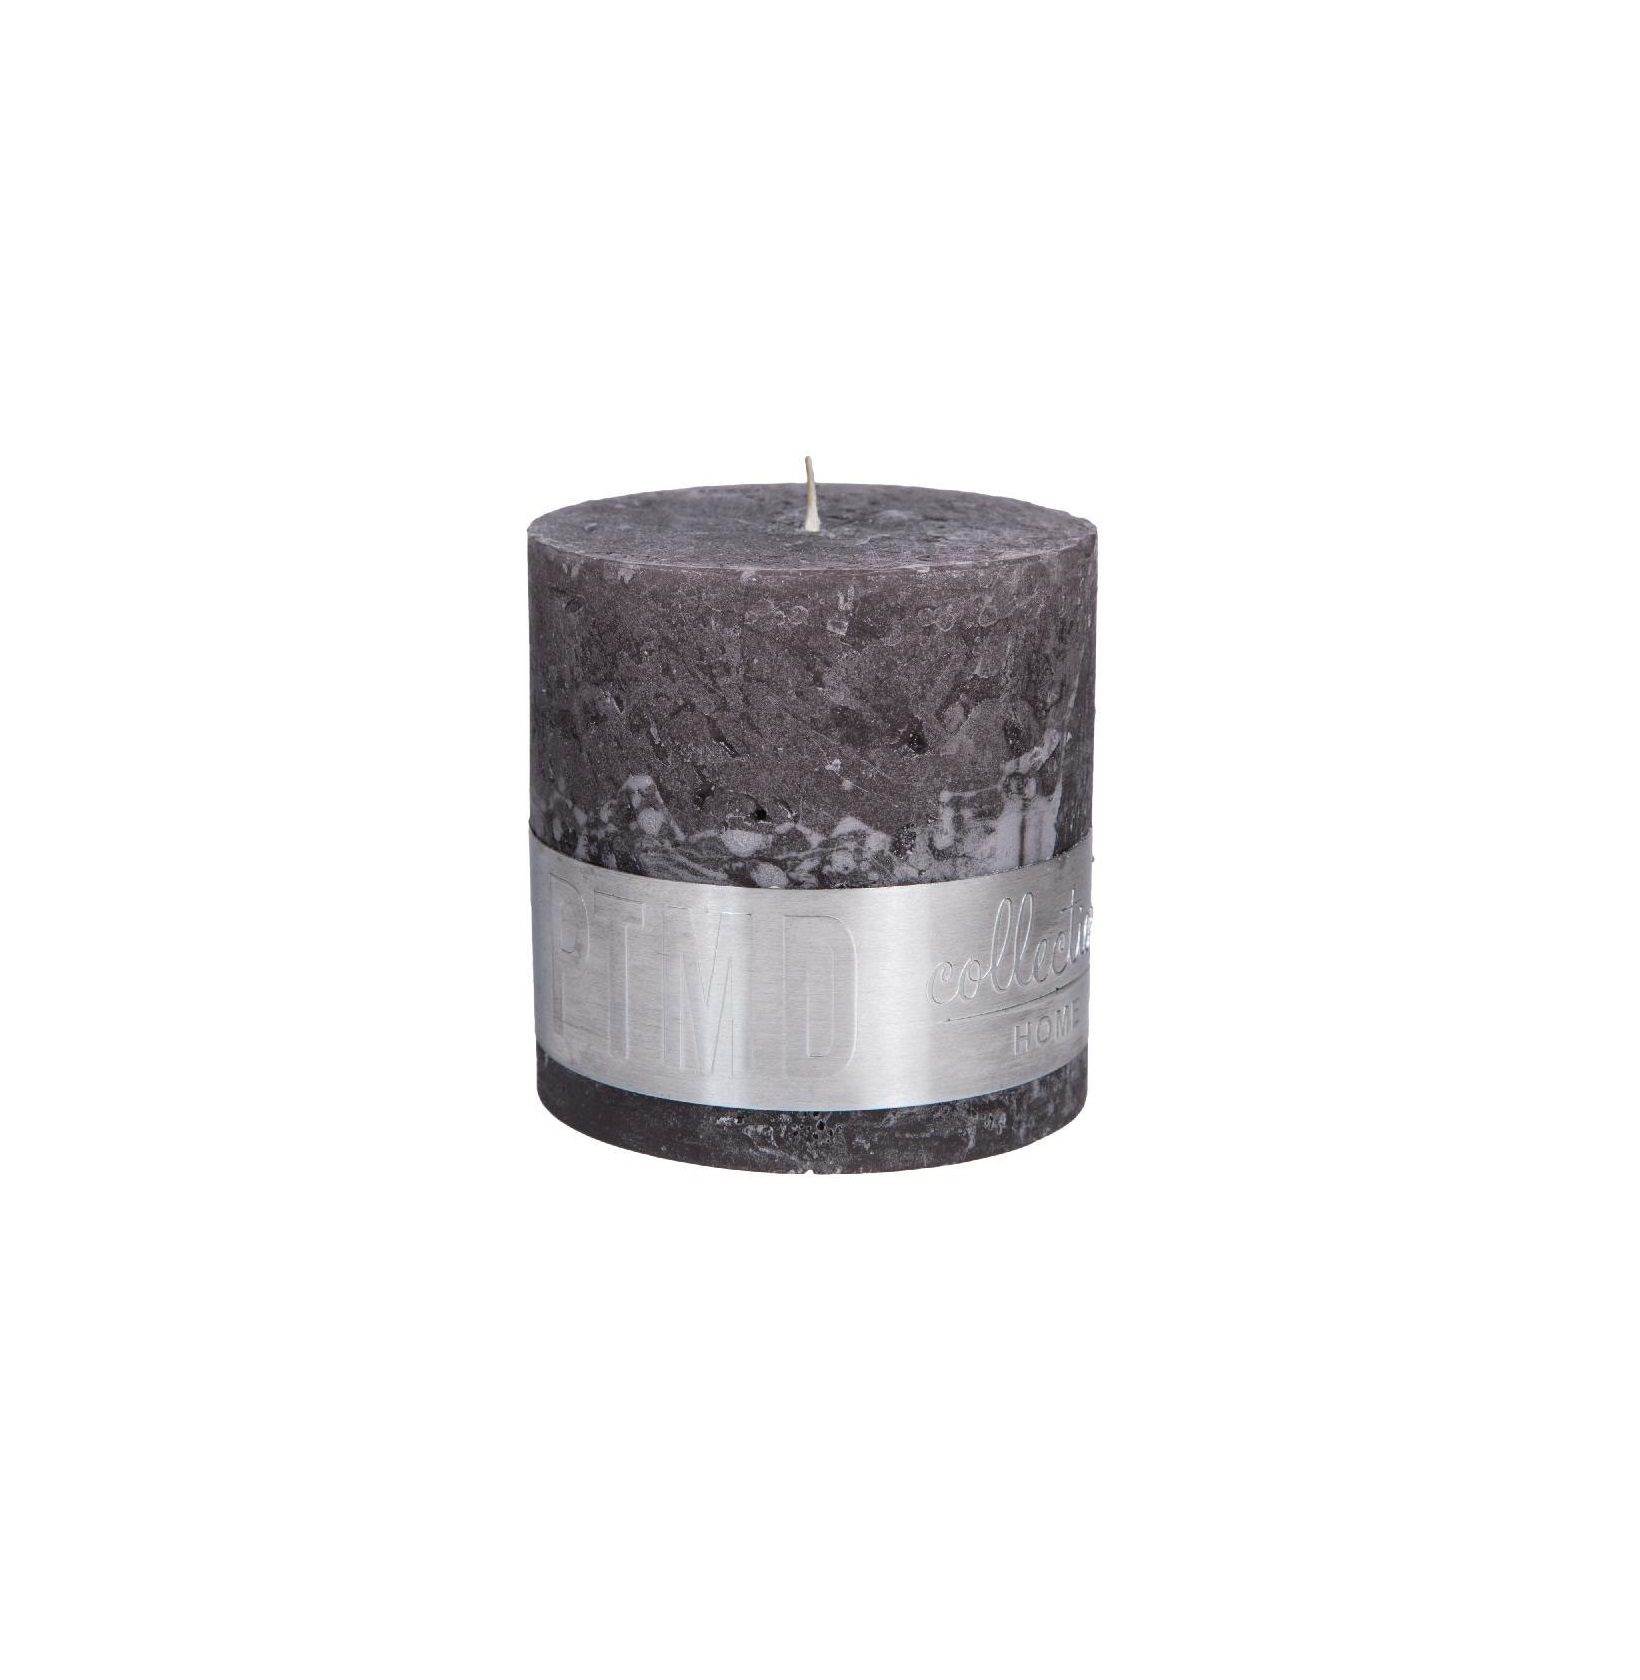 Rustic Swish Grey Block Candle 10X10